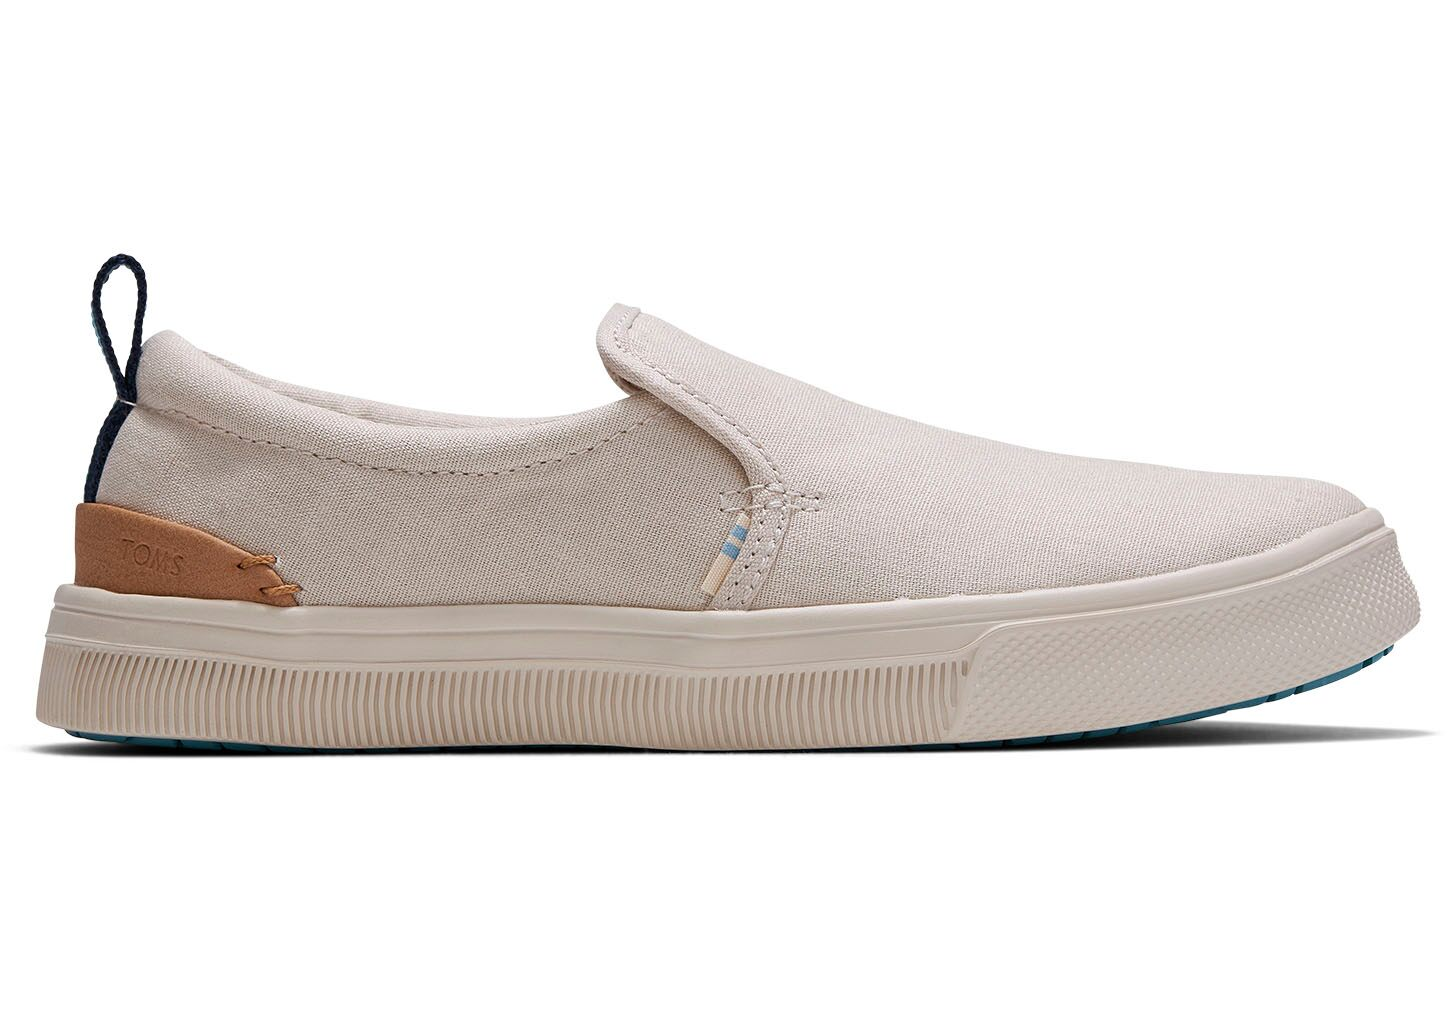 toms travel lite canvas sneakers